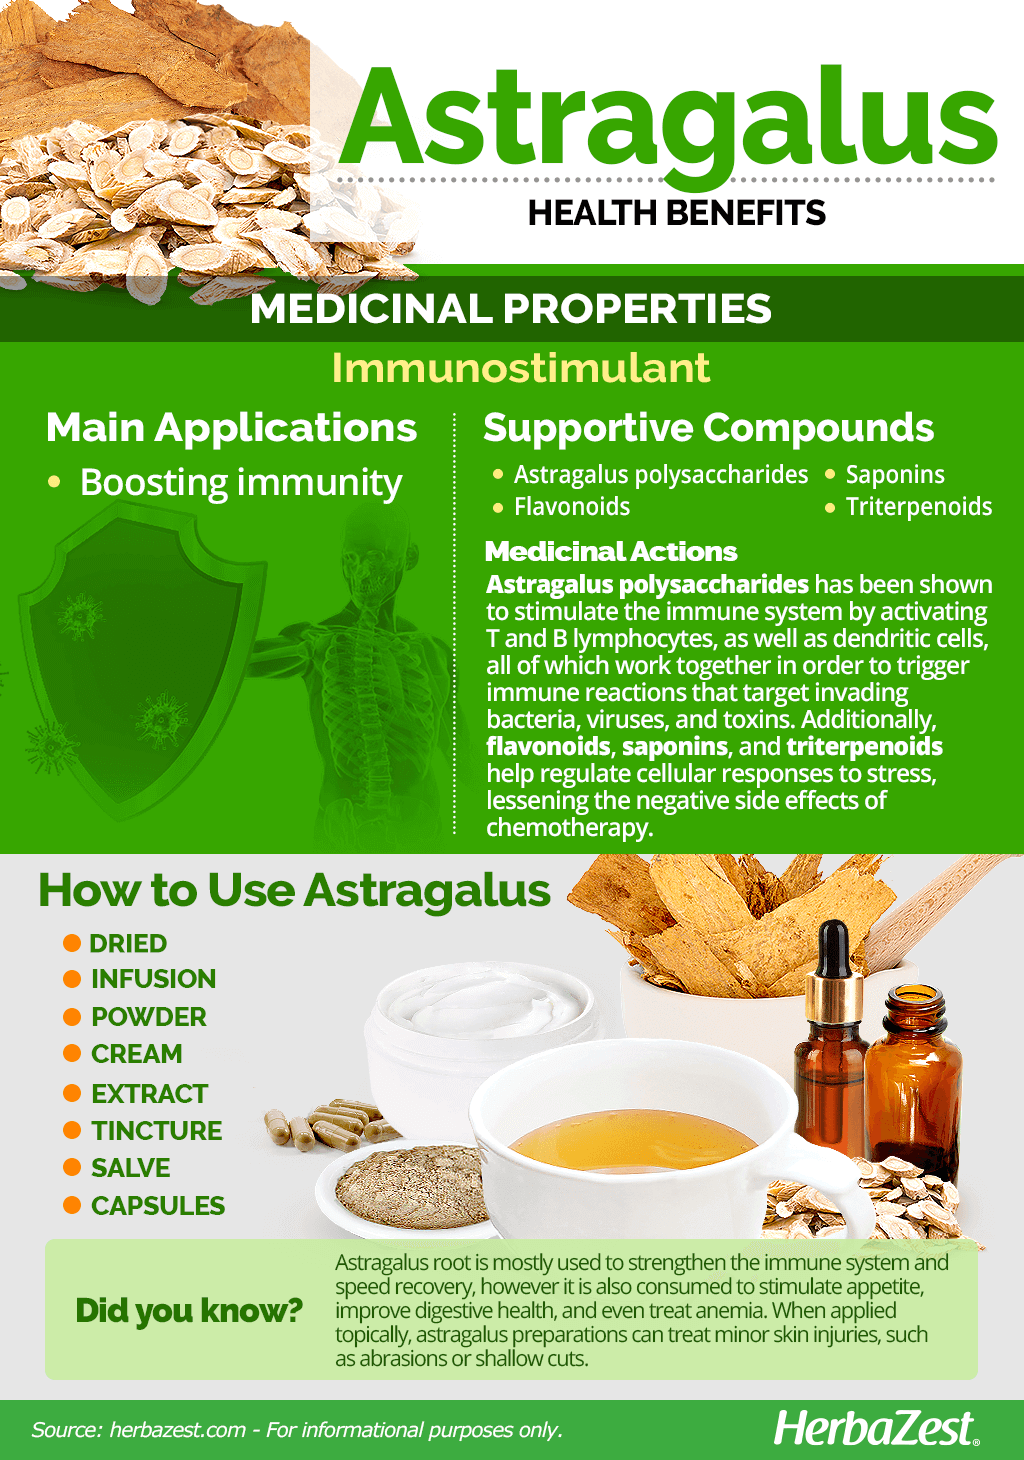 All About Astragalus